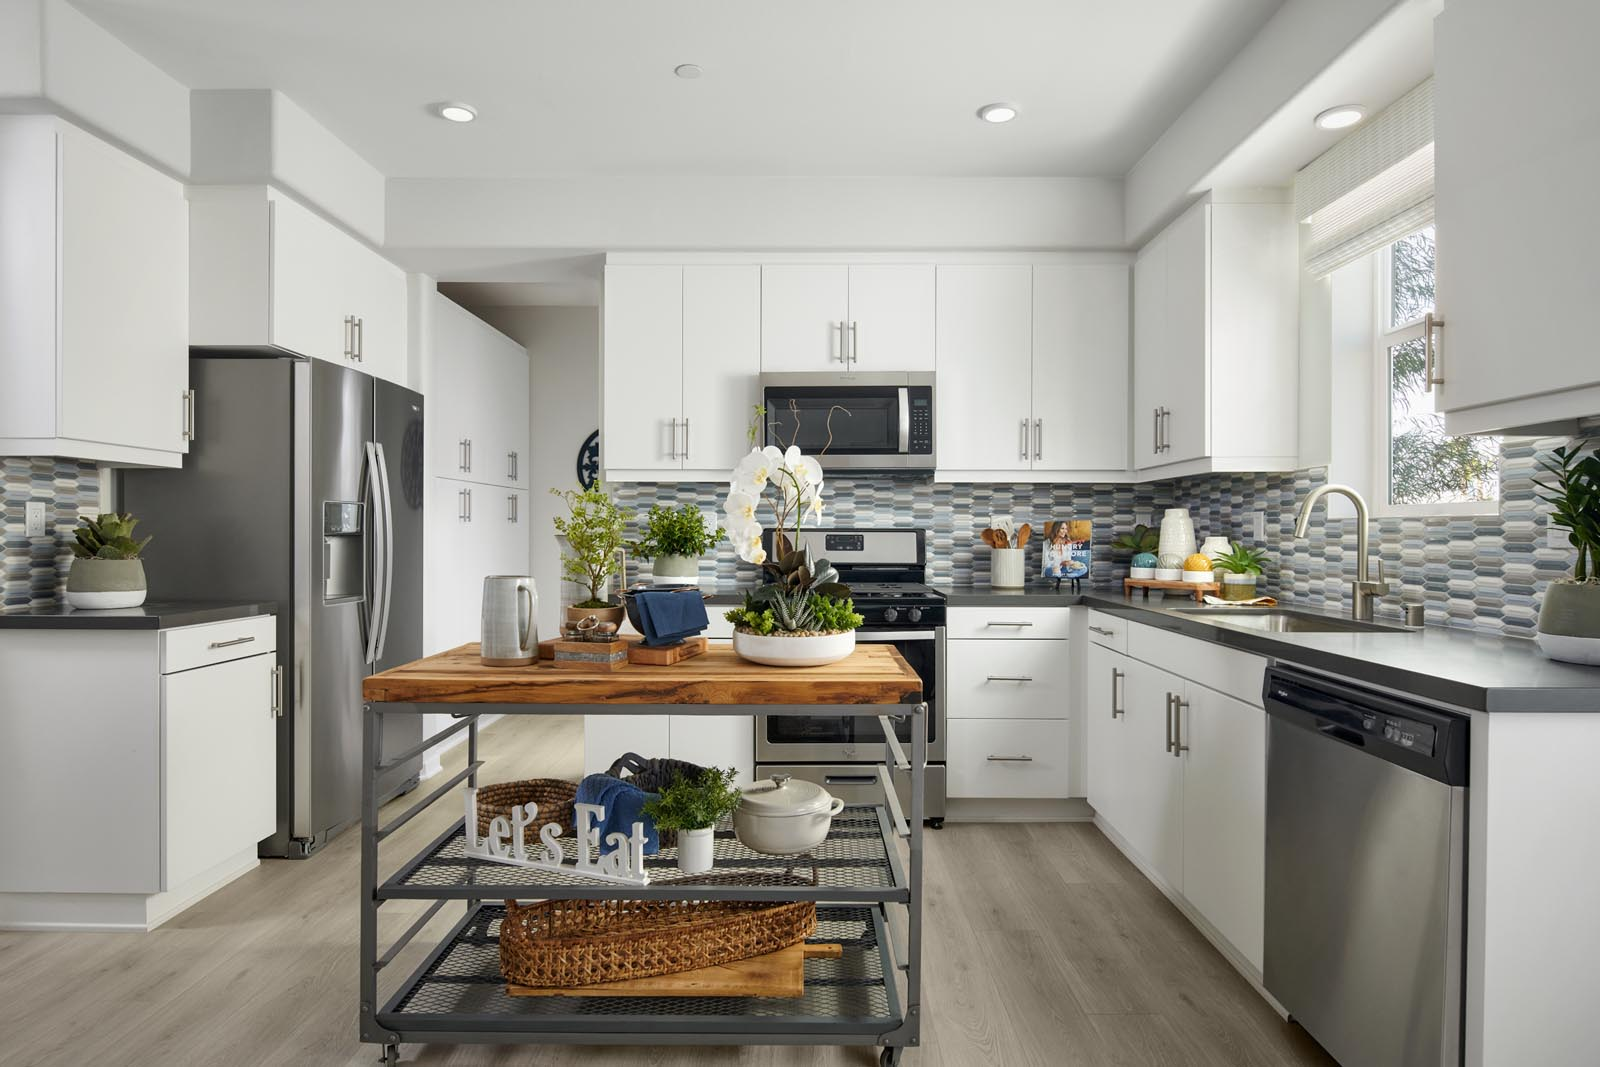 Kitchen | Residence 1 | Enliven | New Homes in Rancho Cucamonga, CA | Van Daele Homes